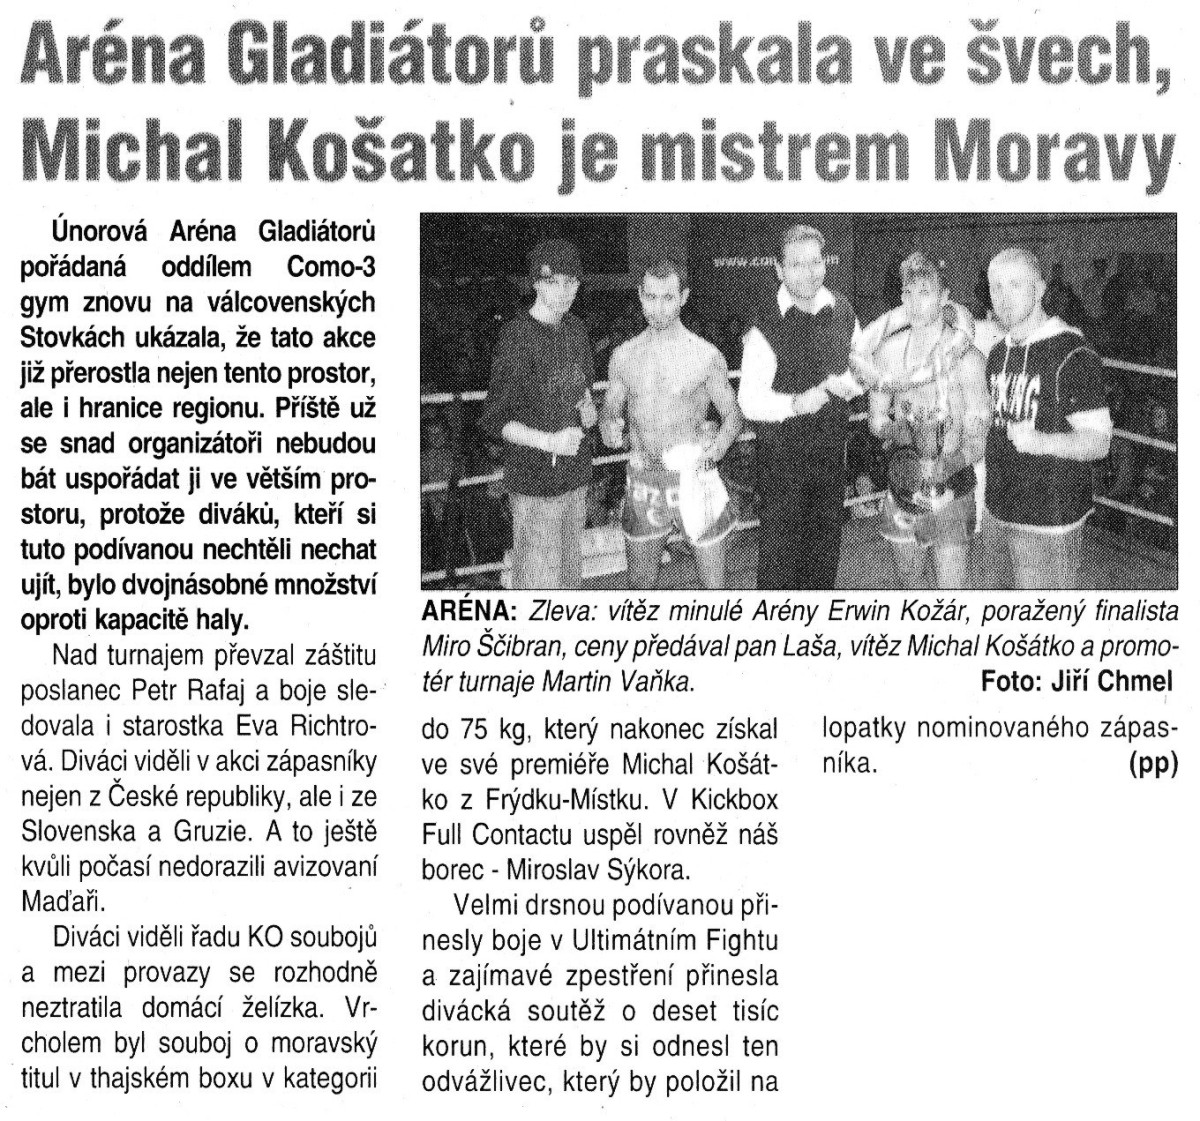 Arena of Gladiators: Michal Košátko has become Moravian Champion (Czech Republic, February 24th, 2005)